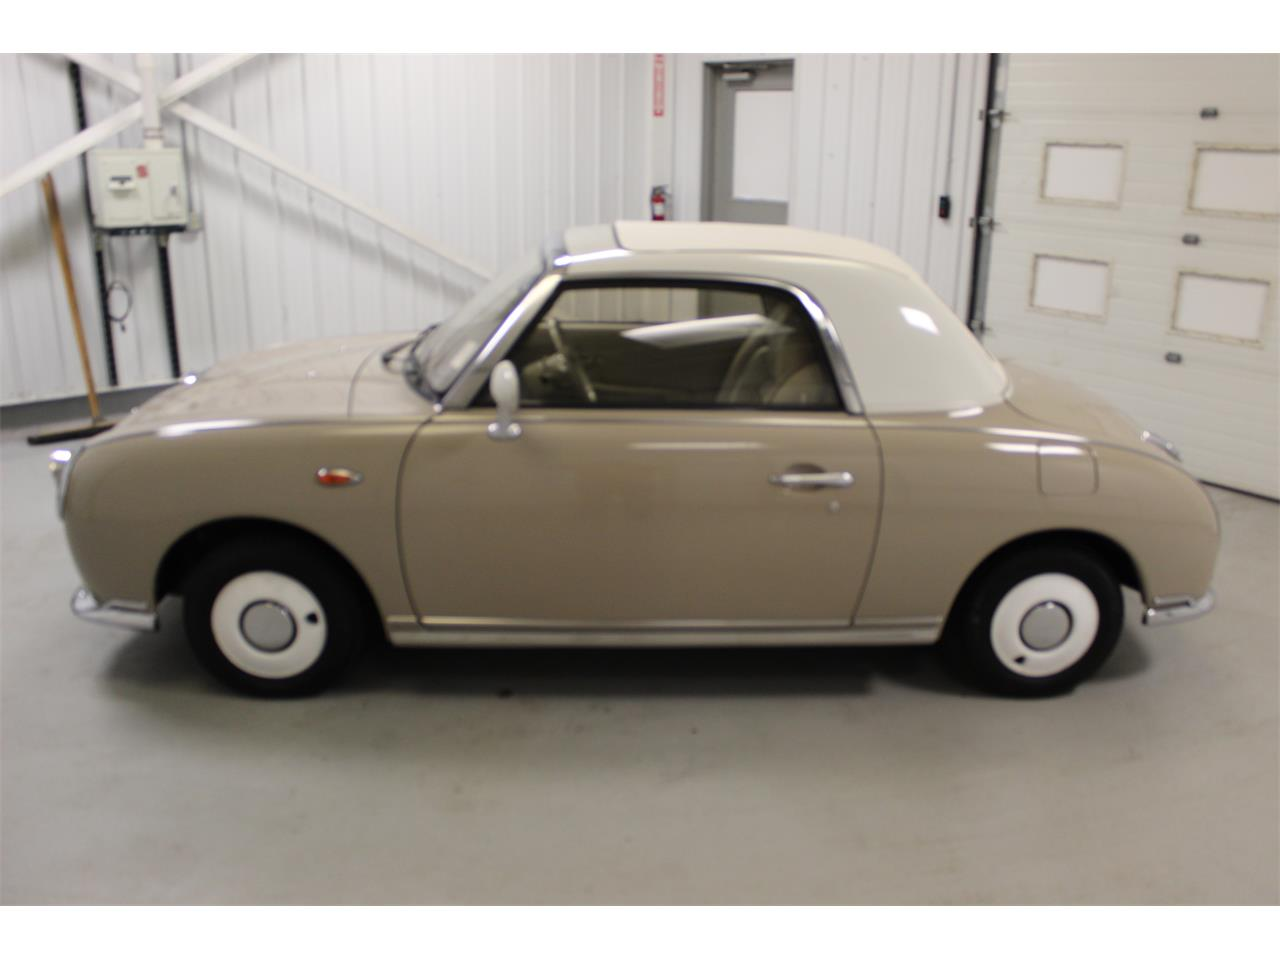 1991 Nissan Figaro for sale in Christiansburg, VA – photo 6